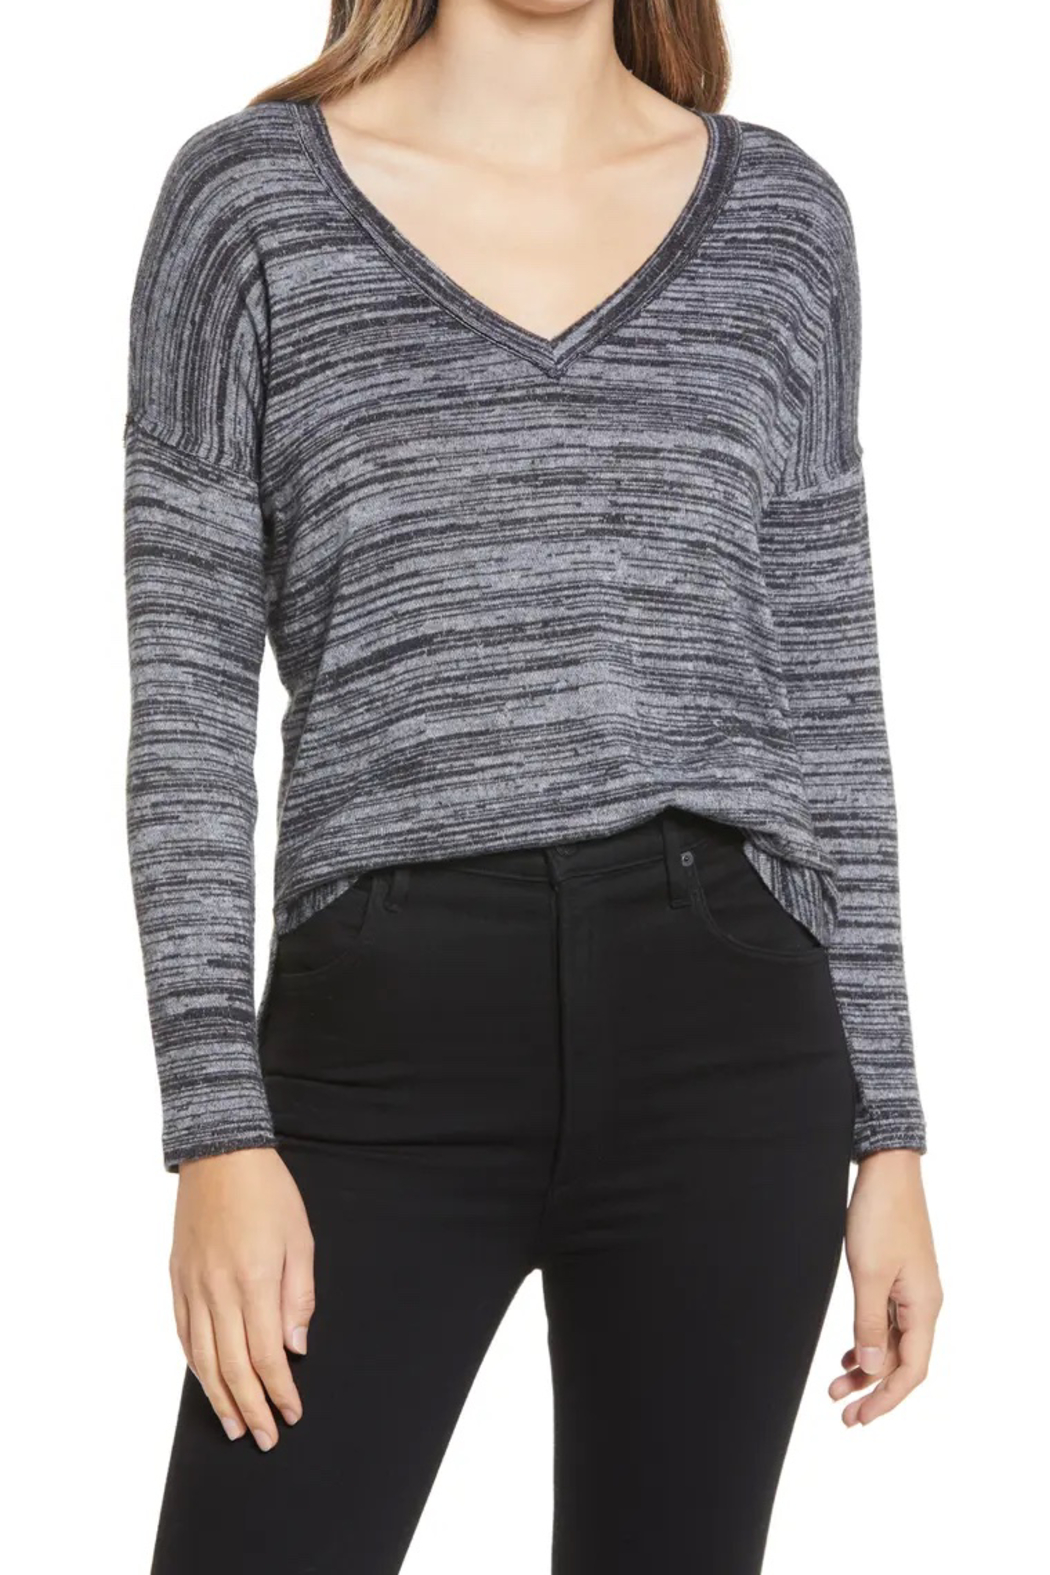 Bobeau Space Dyed Knit Top - Main Image